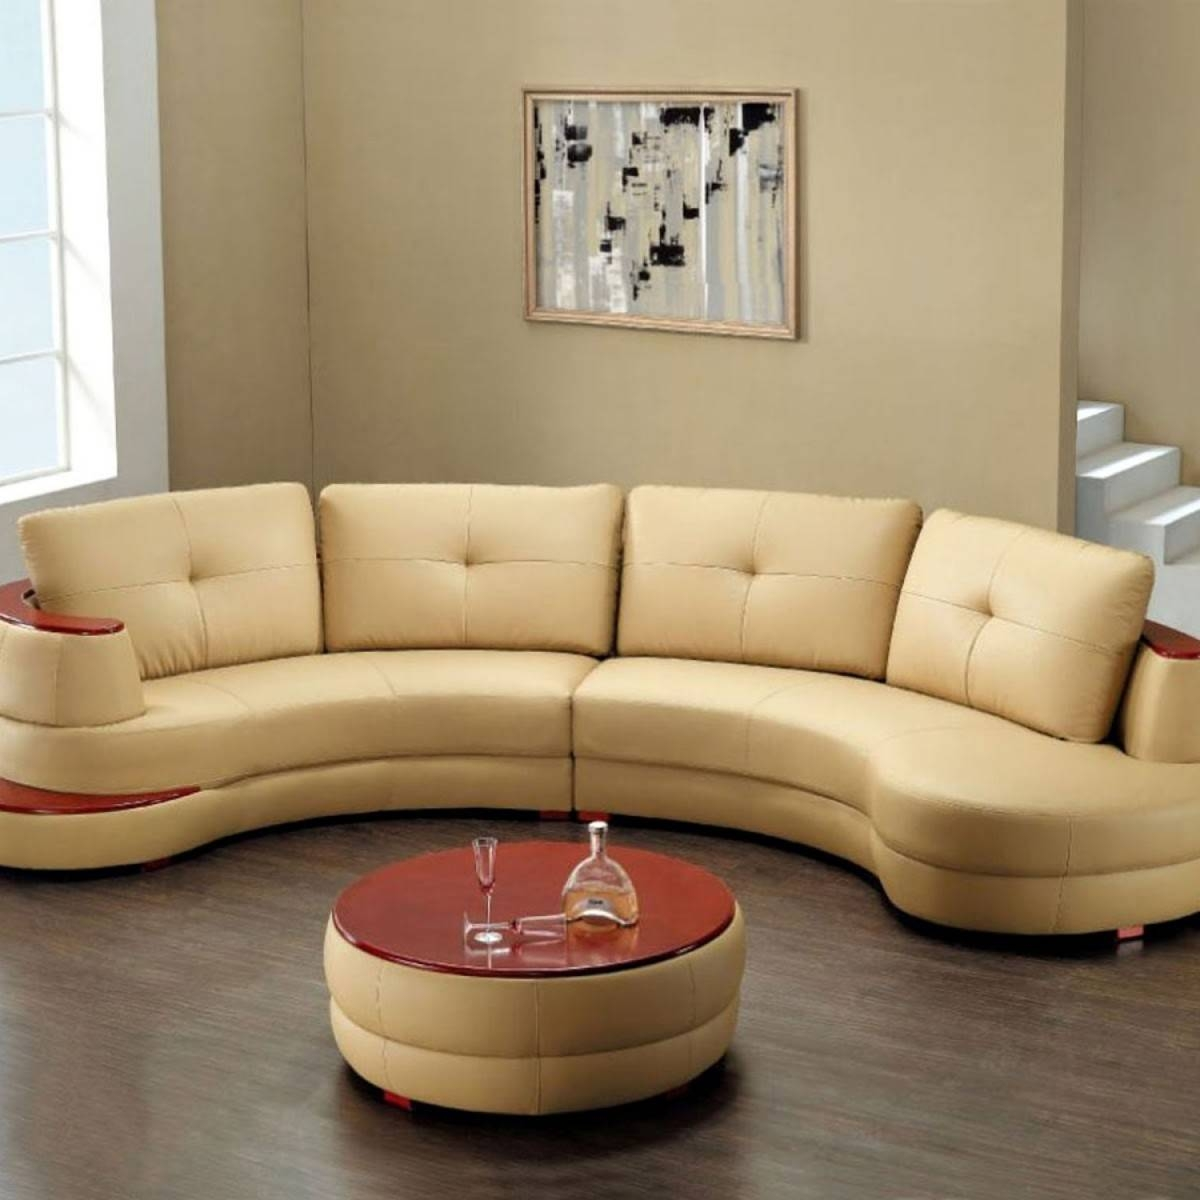 High Quality Of Round Ottoman Coffee Table with regard to High Quality Coffee Tables (Image 16 of 30)